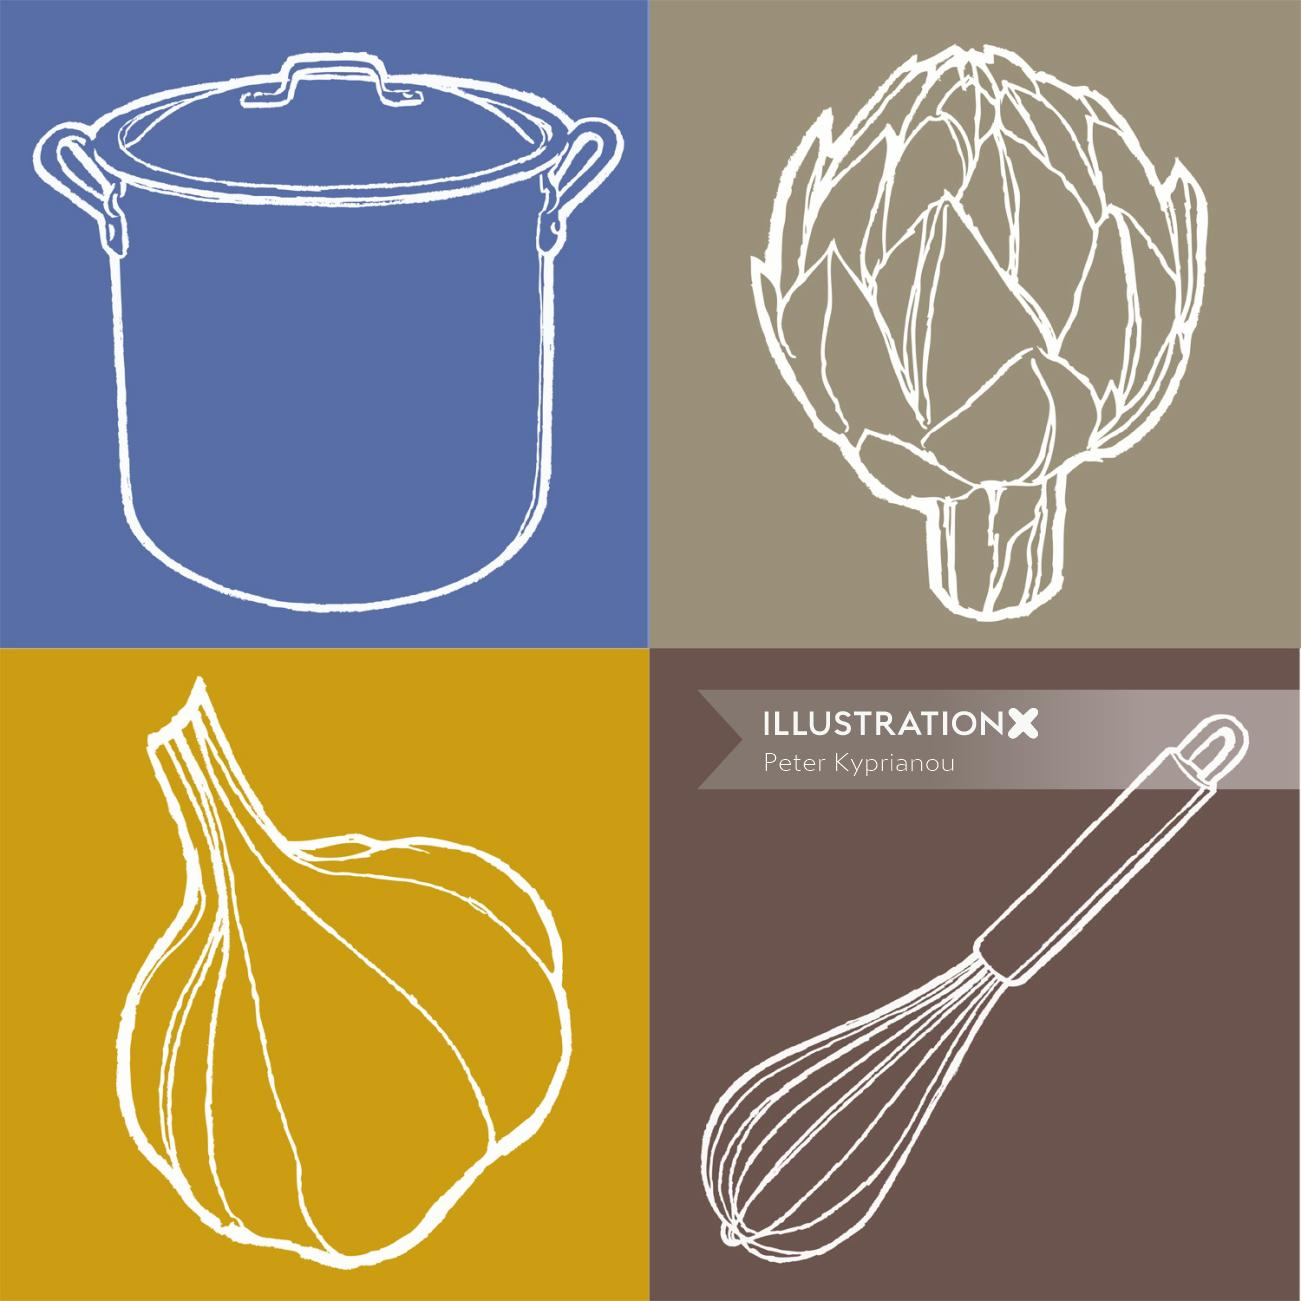 Pictogram of Utensils and vegetables